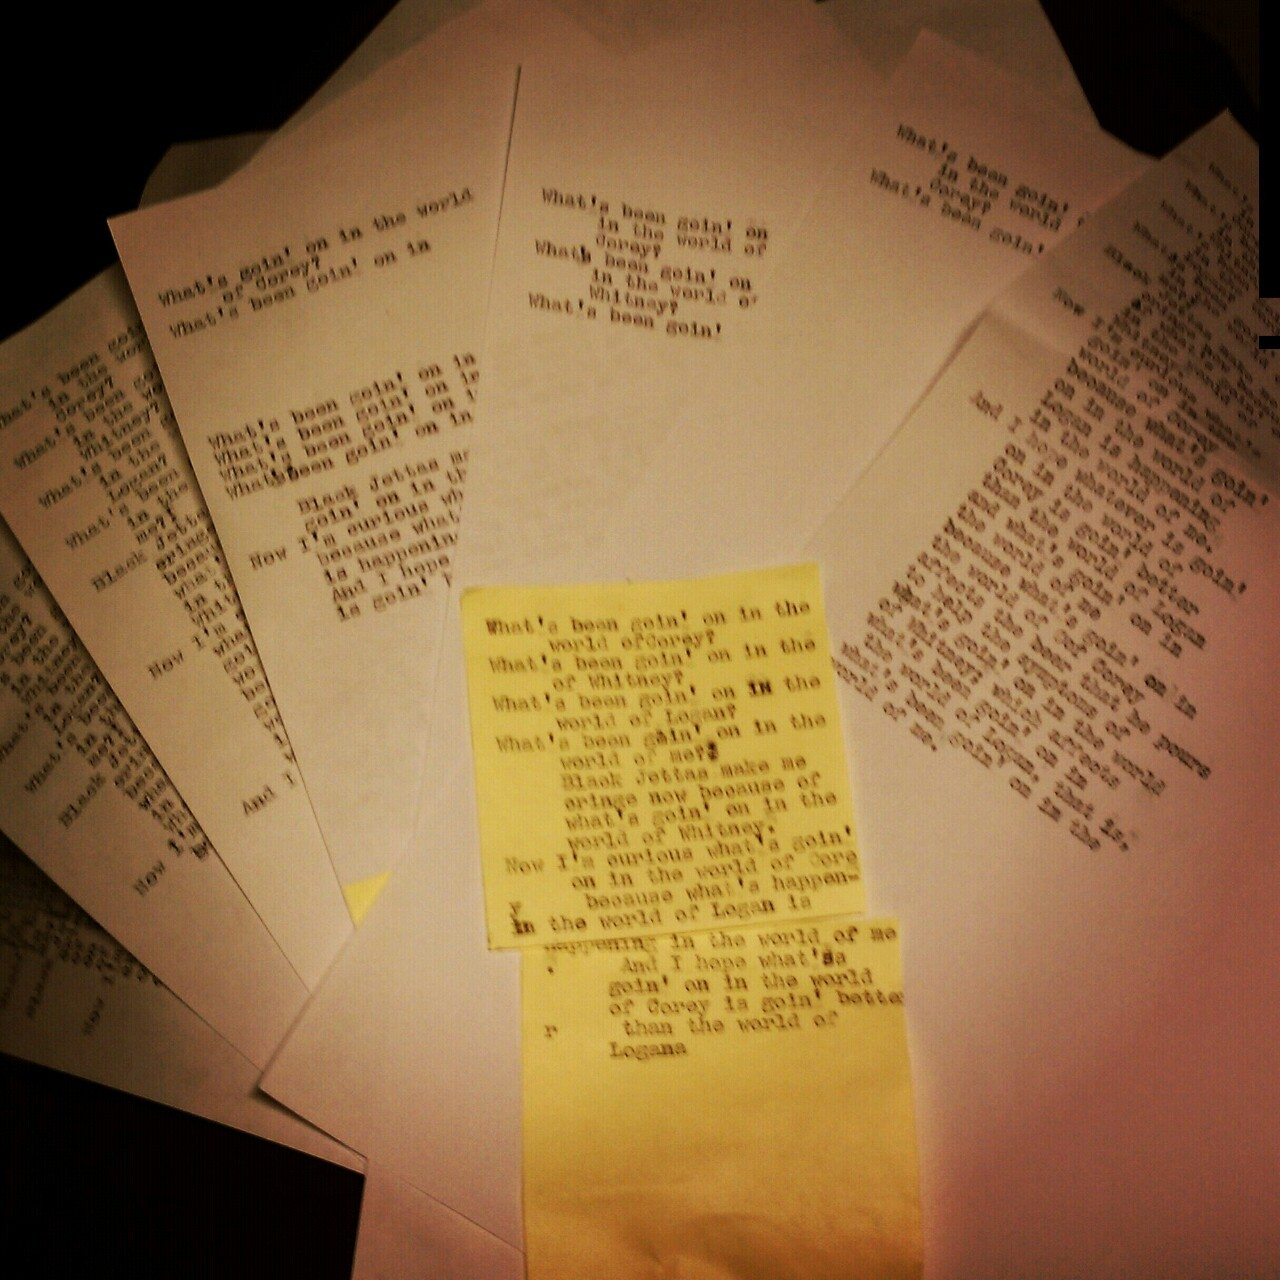 Typewritten rough drafts are the worst kind there are.